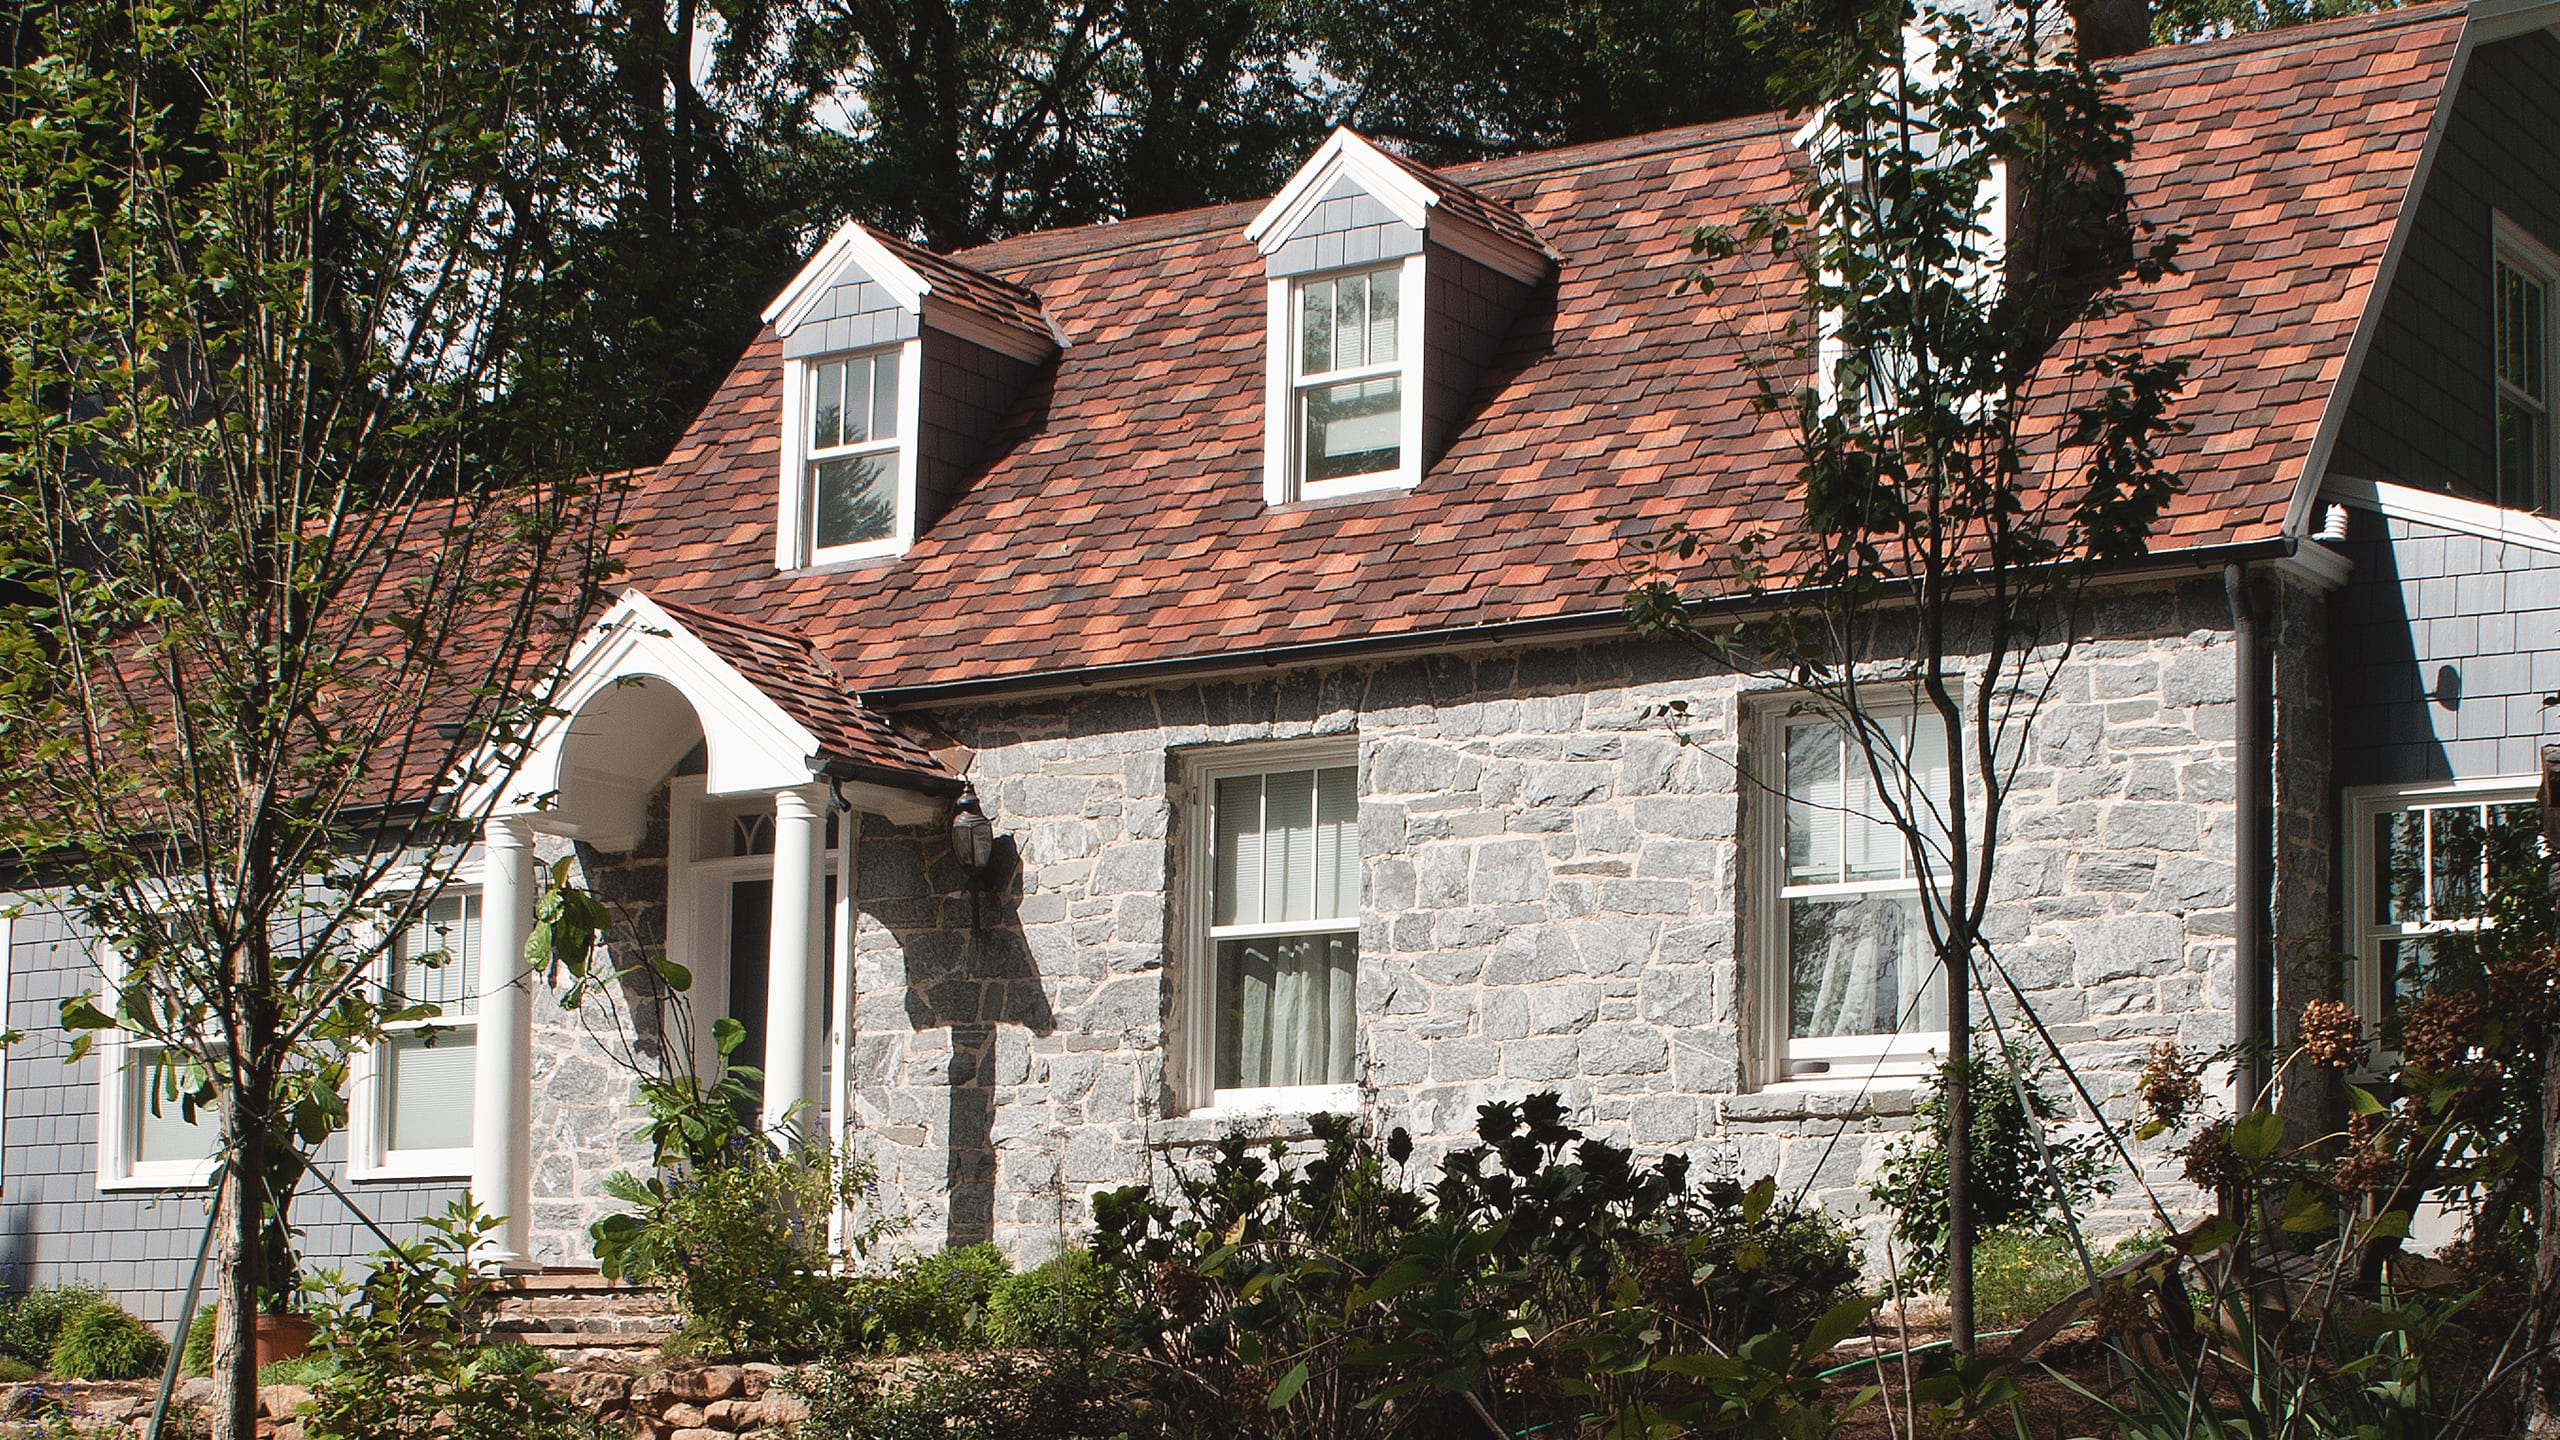 Private Residence - Atlanta Ludowici Roof Tile